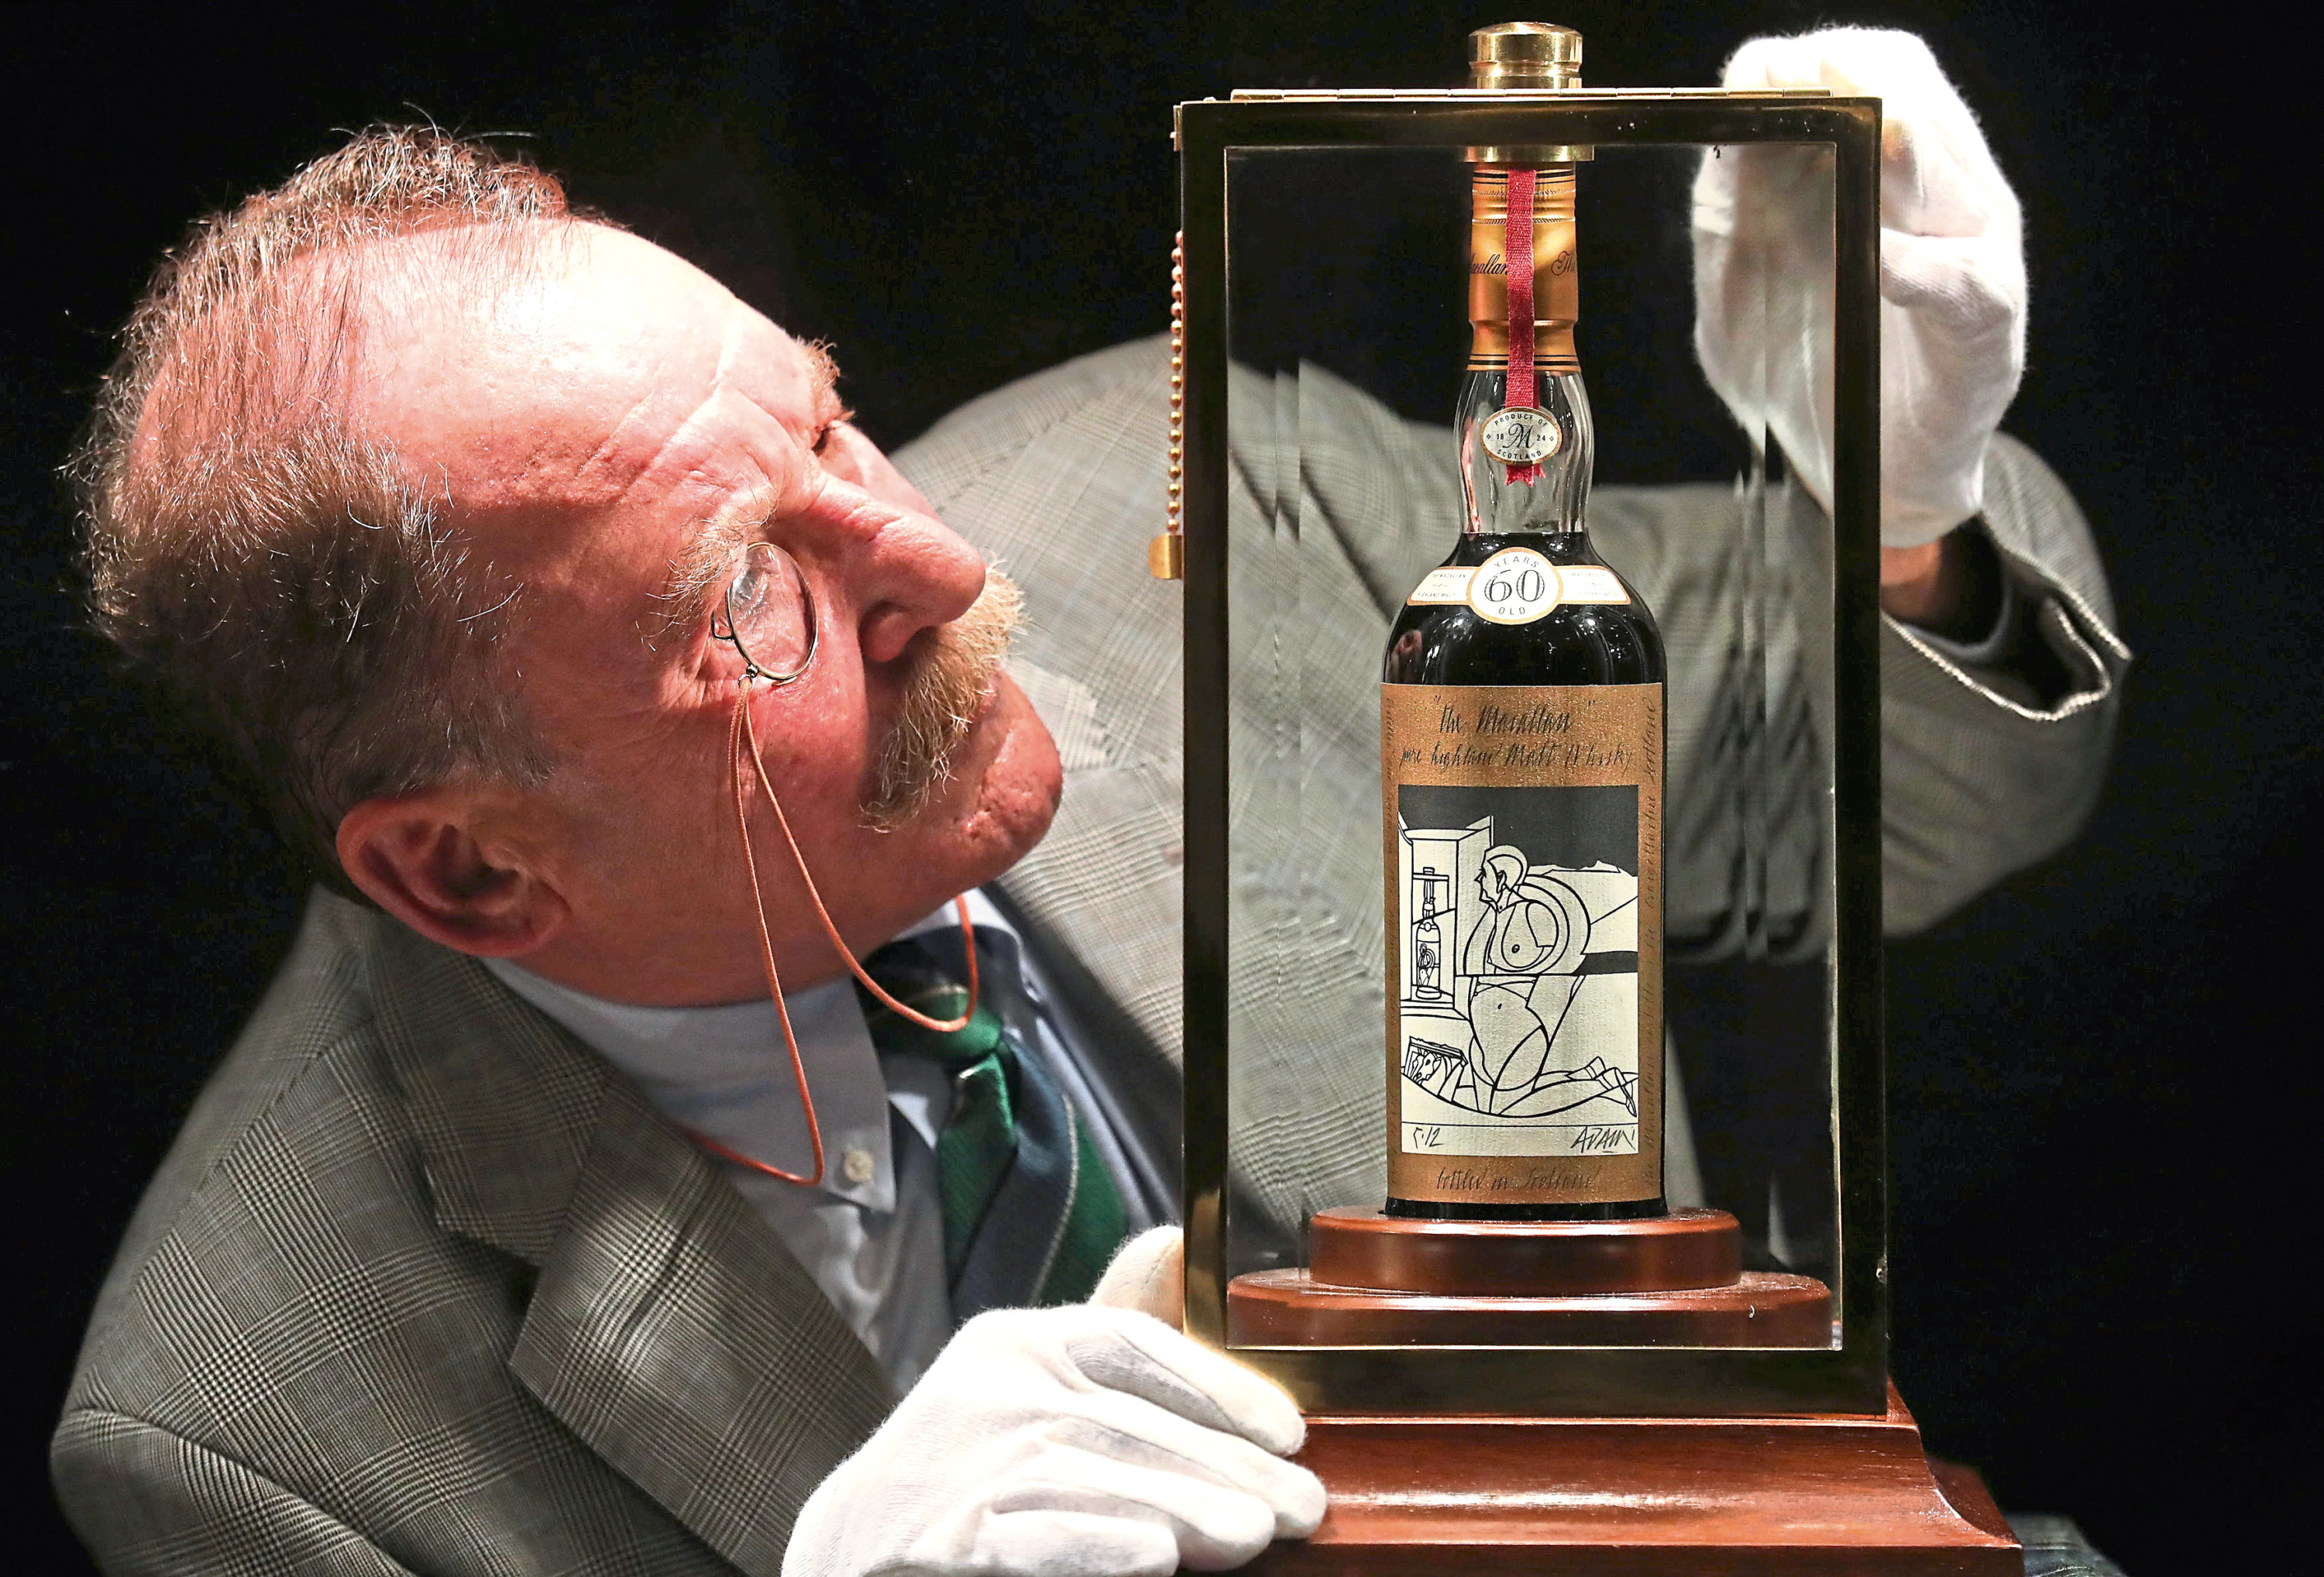 Whisky expert Charles MacLean with the worlds rarest and most valuable whisky